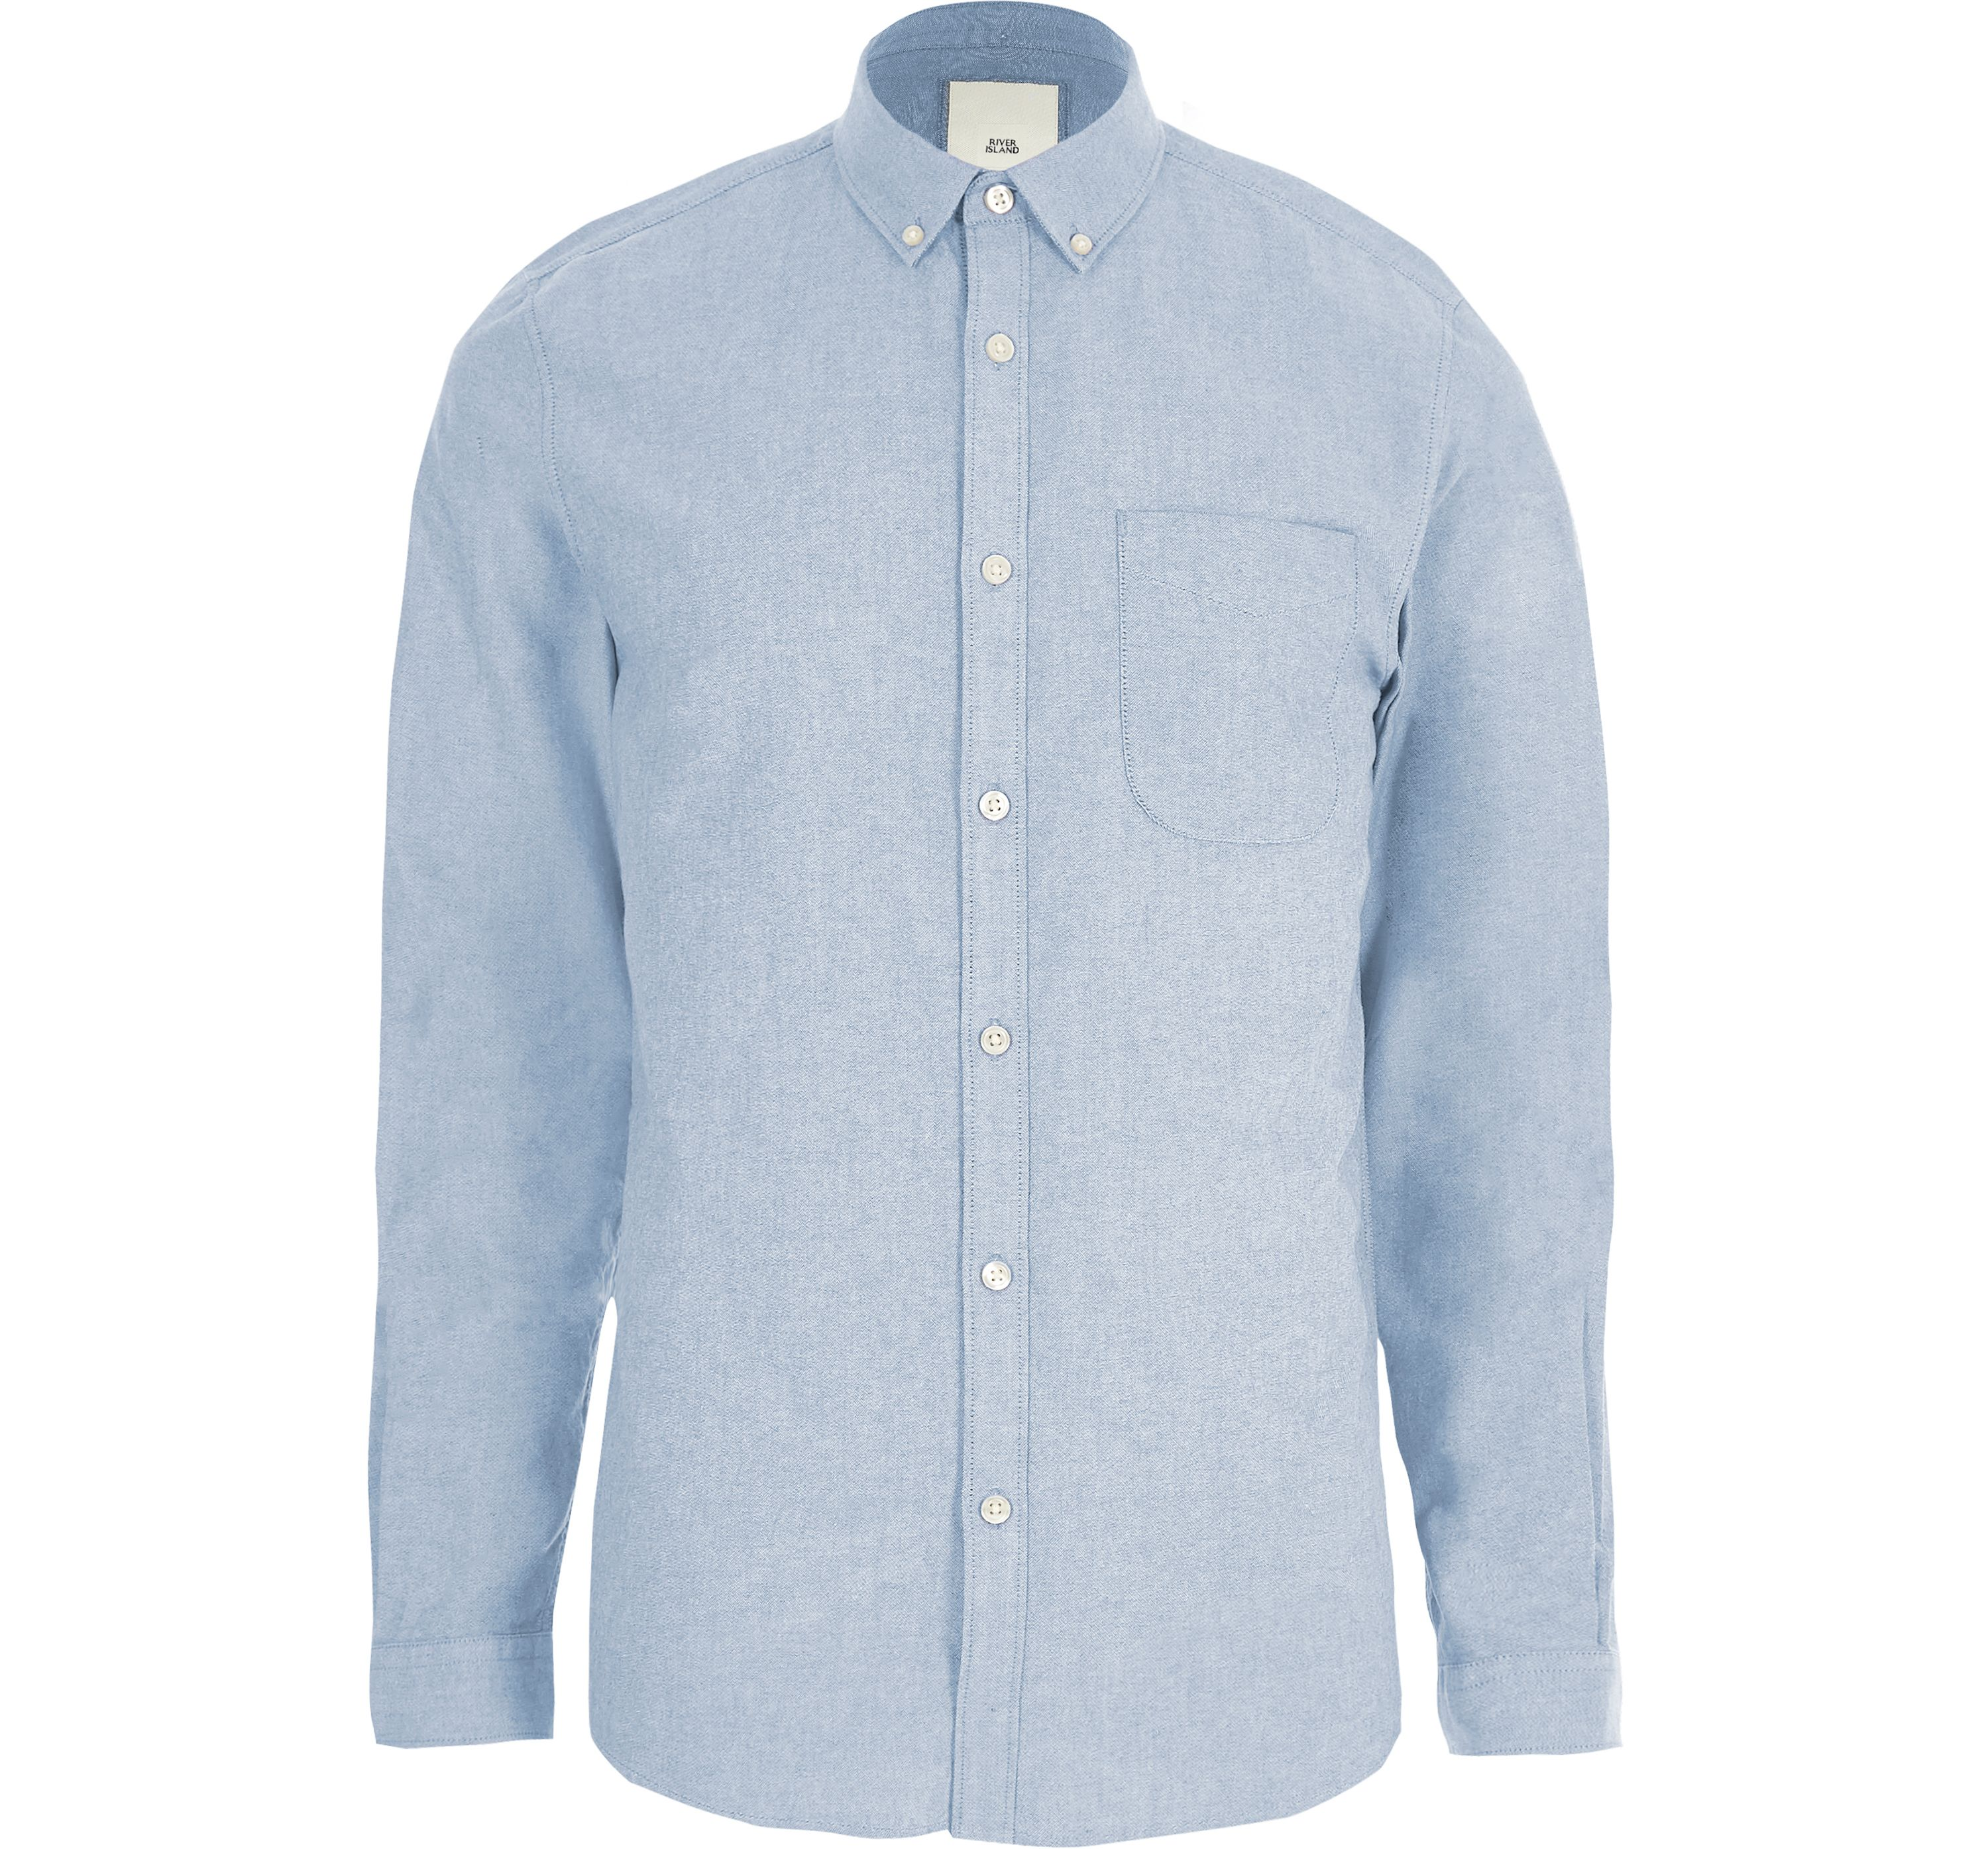 River Island Mens Light Blue long sleeve Oxford shirt